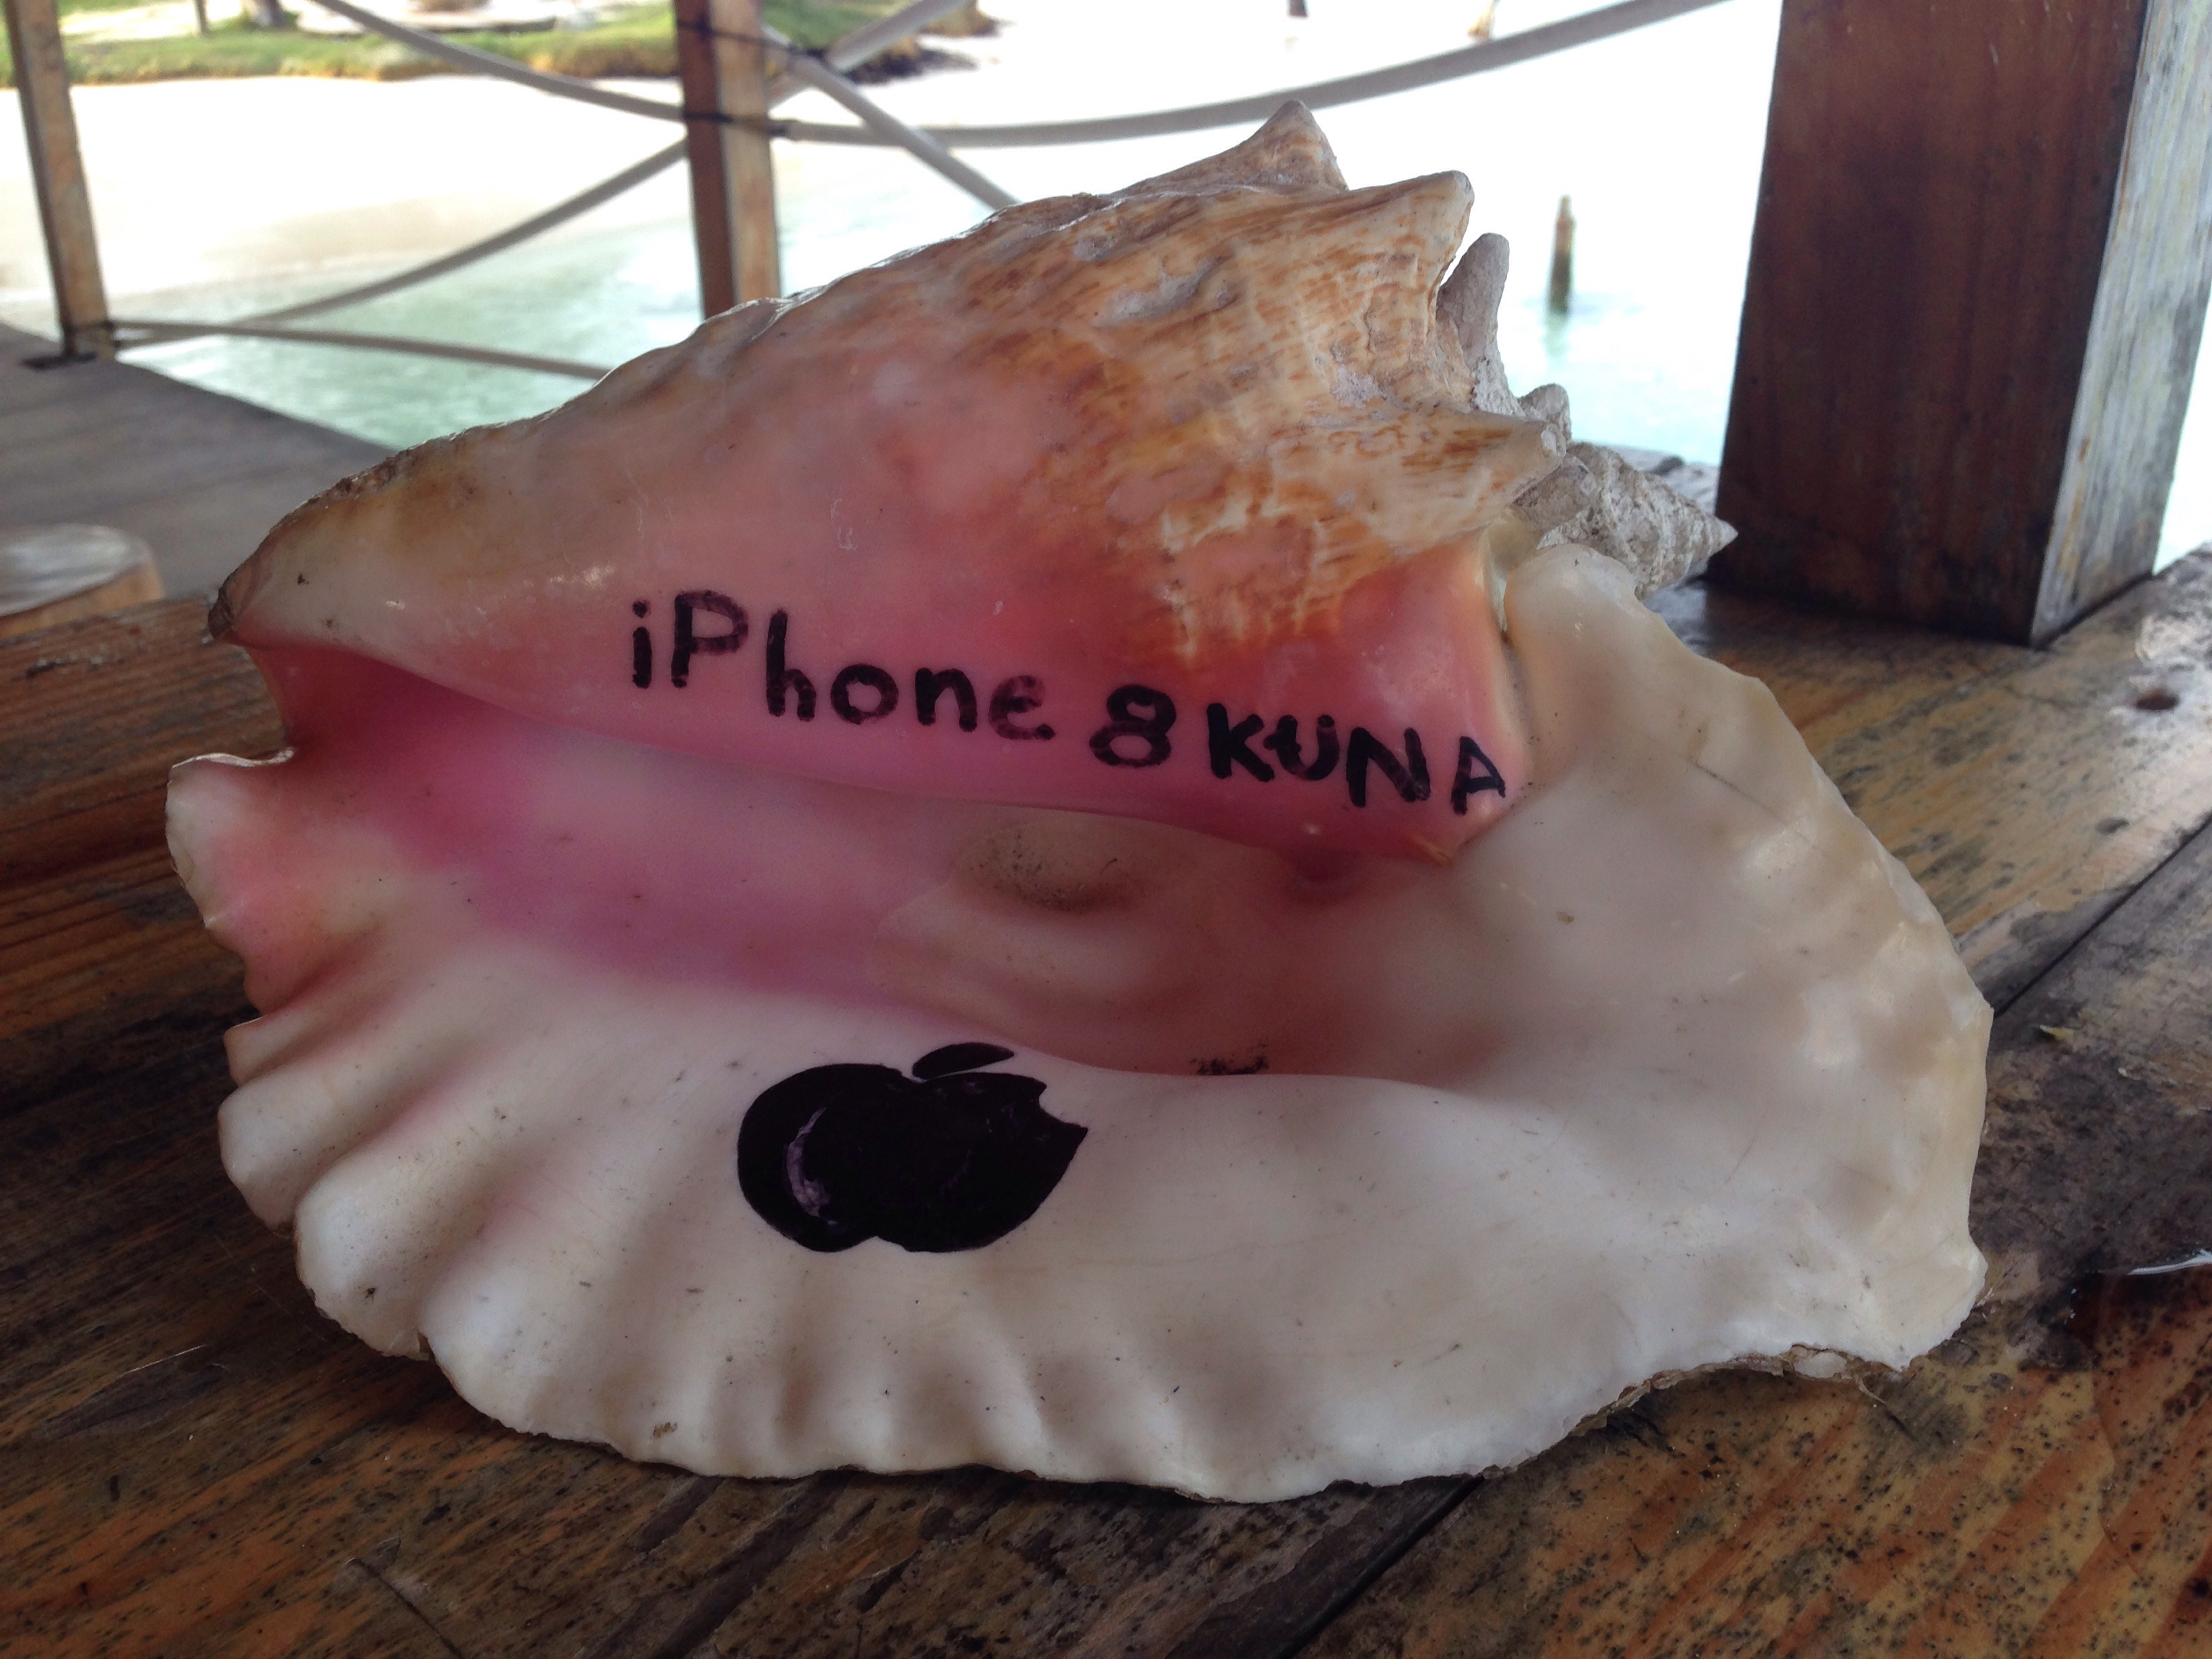 Would you trade your iPhone for this island phone?